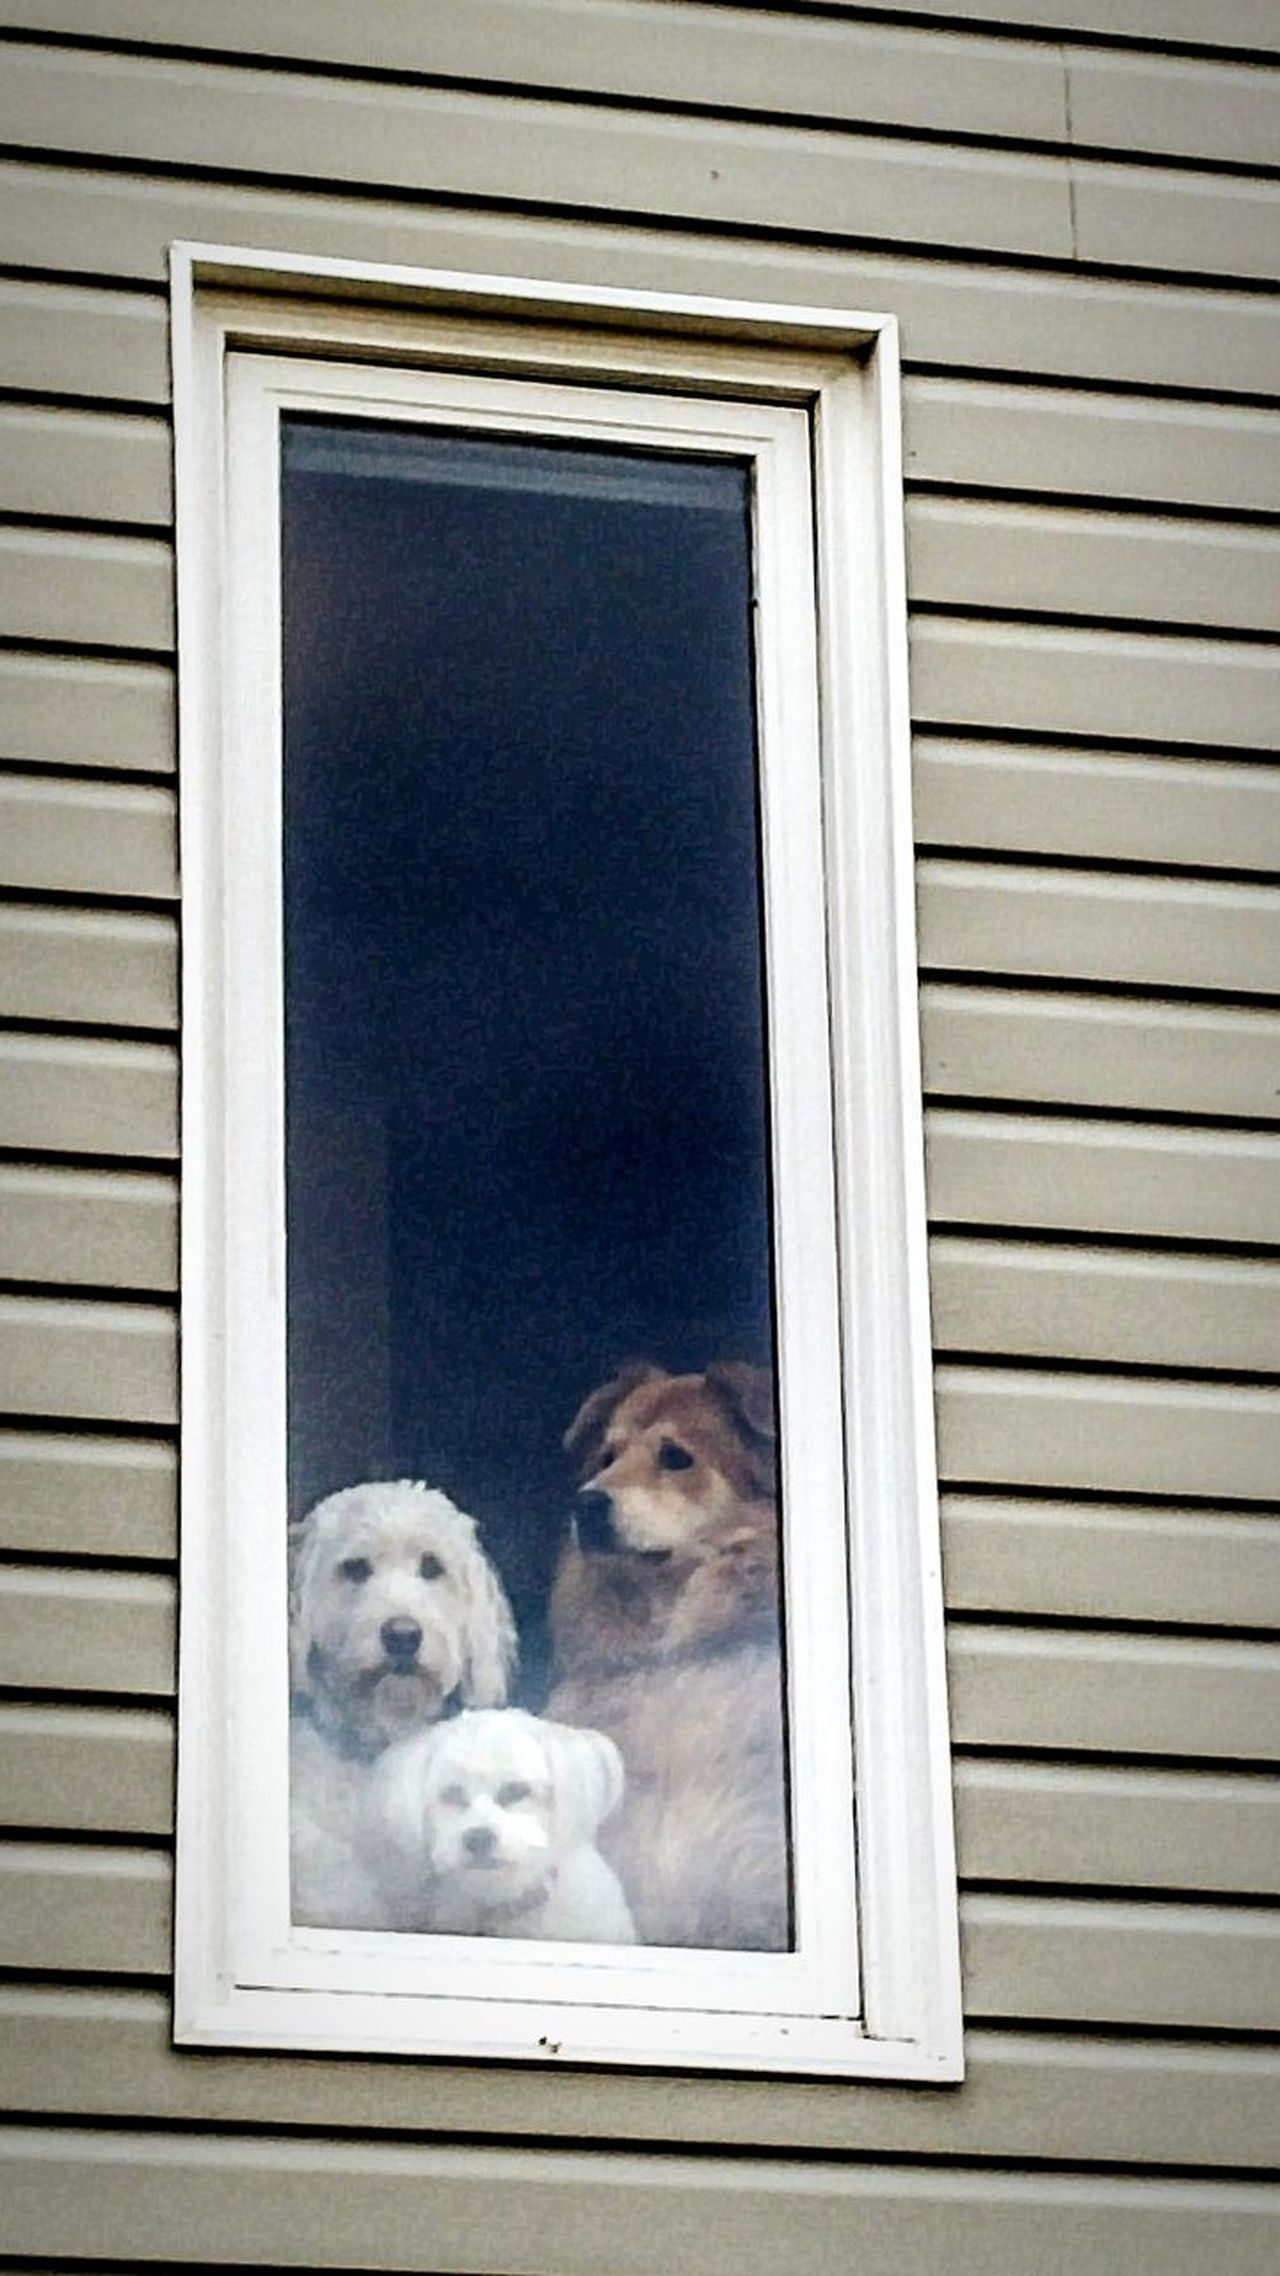 On the lookout. Faithfully waiting at home. Window Pets Looking Through Window Domestic Animals Dog No People Cute Cute Pets Building Exterior Animal Themes Day Keeping Watch Waiting Three Patience House Home